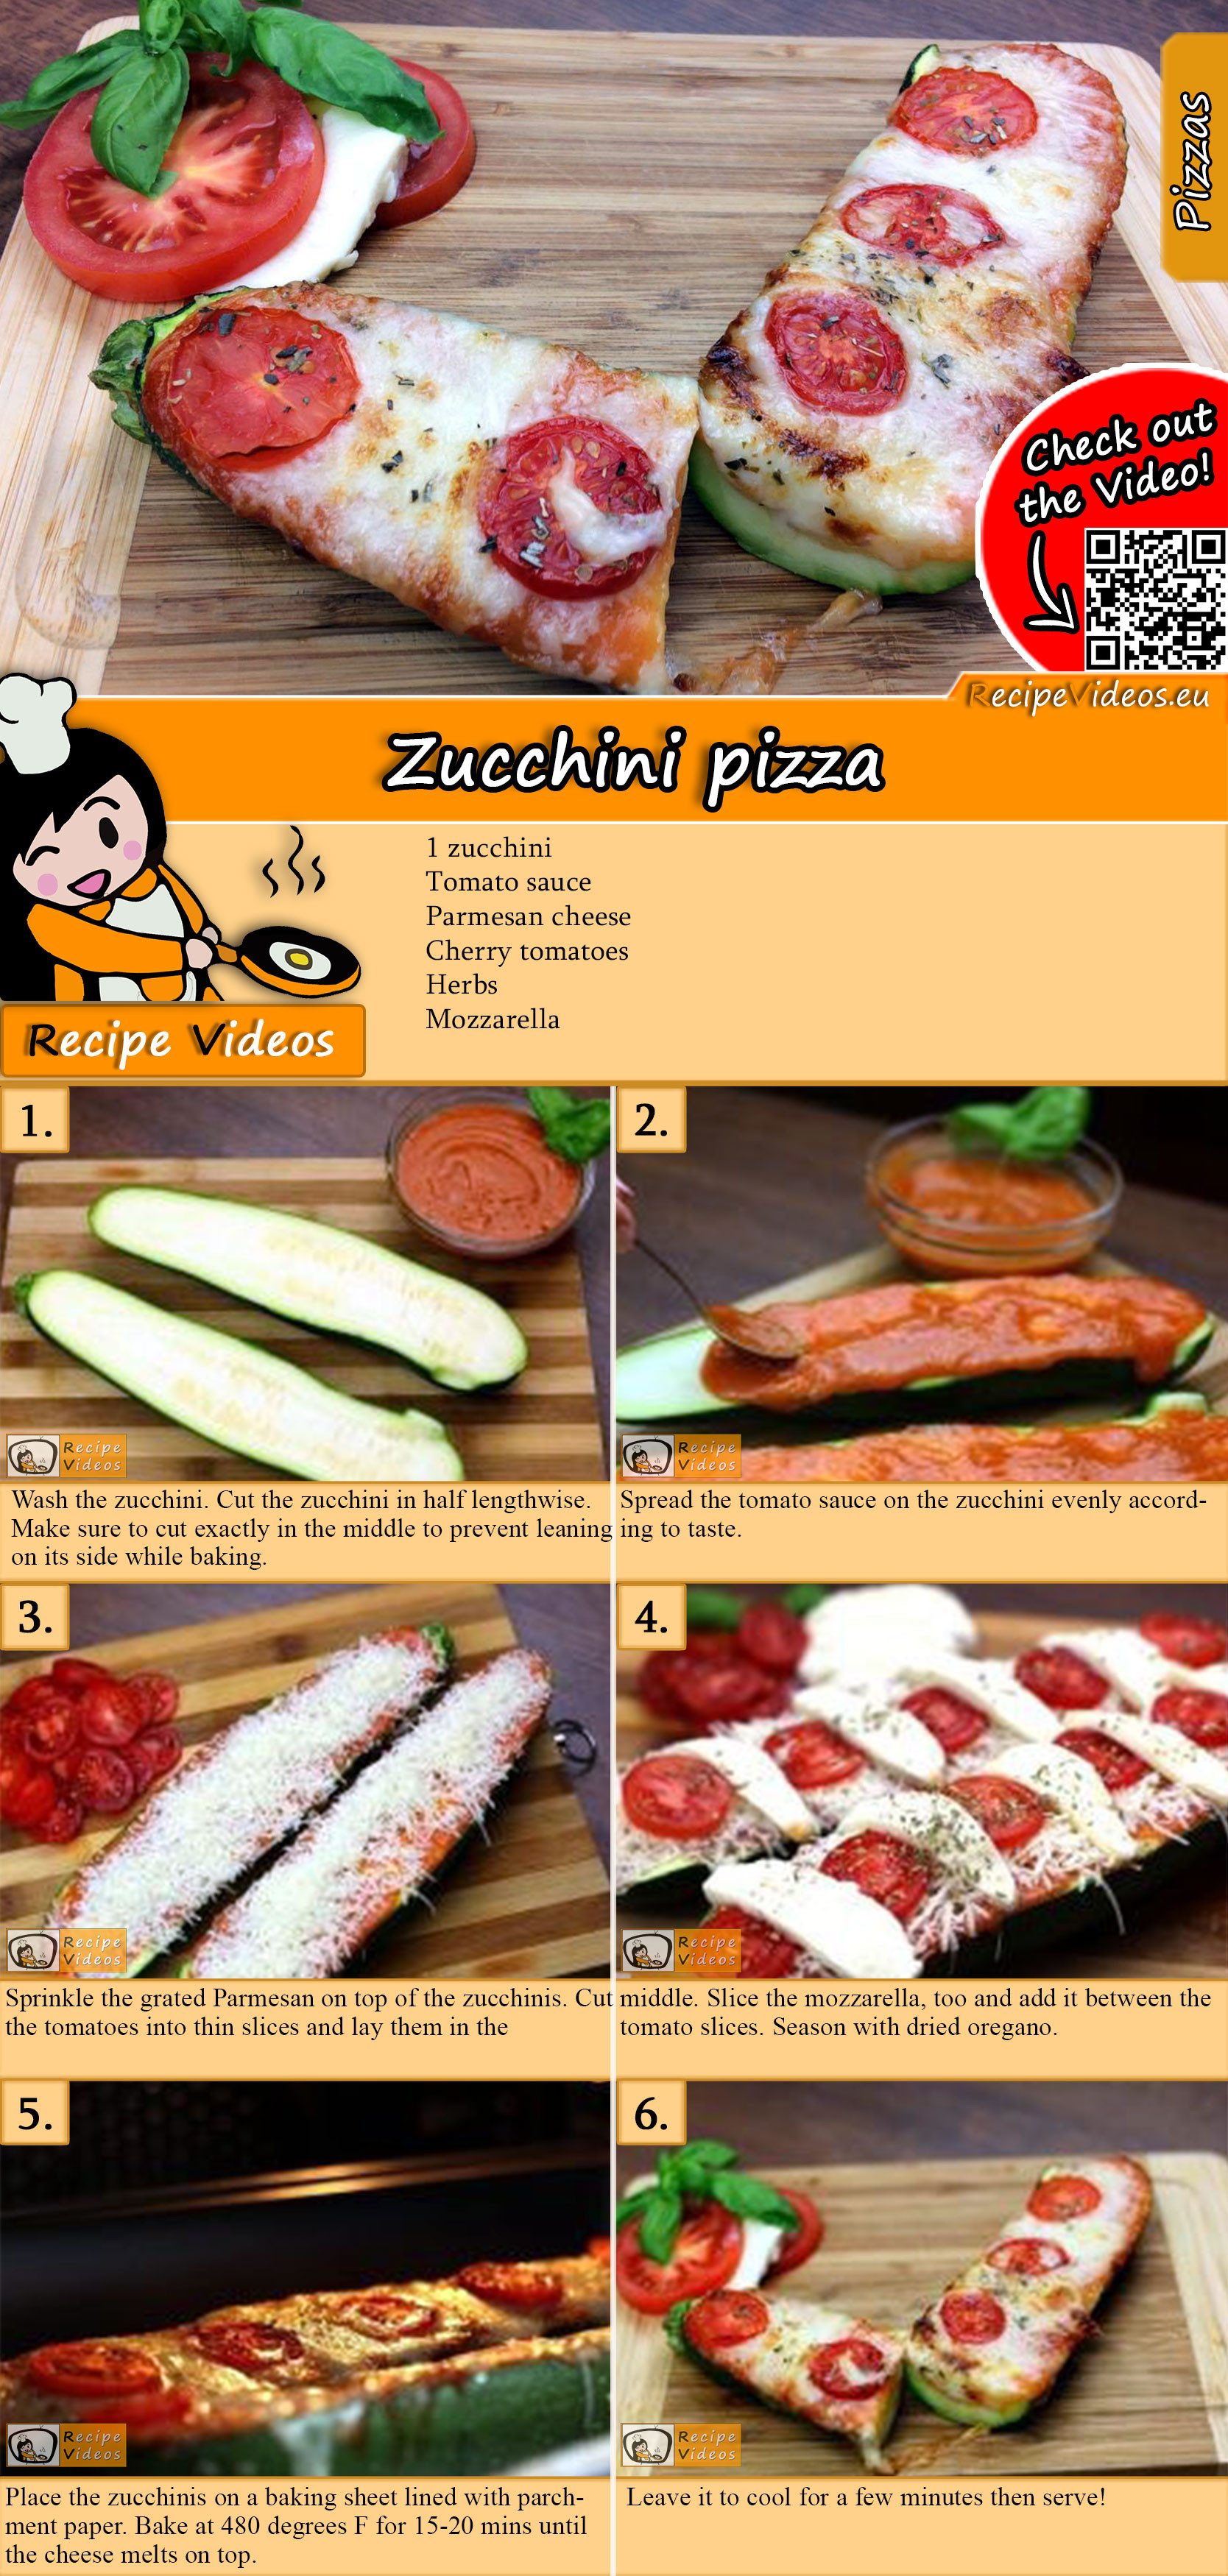 Zucchini pizza recipe with video